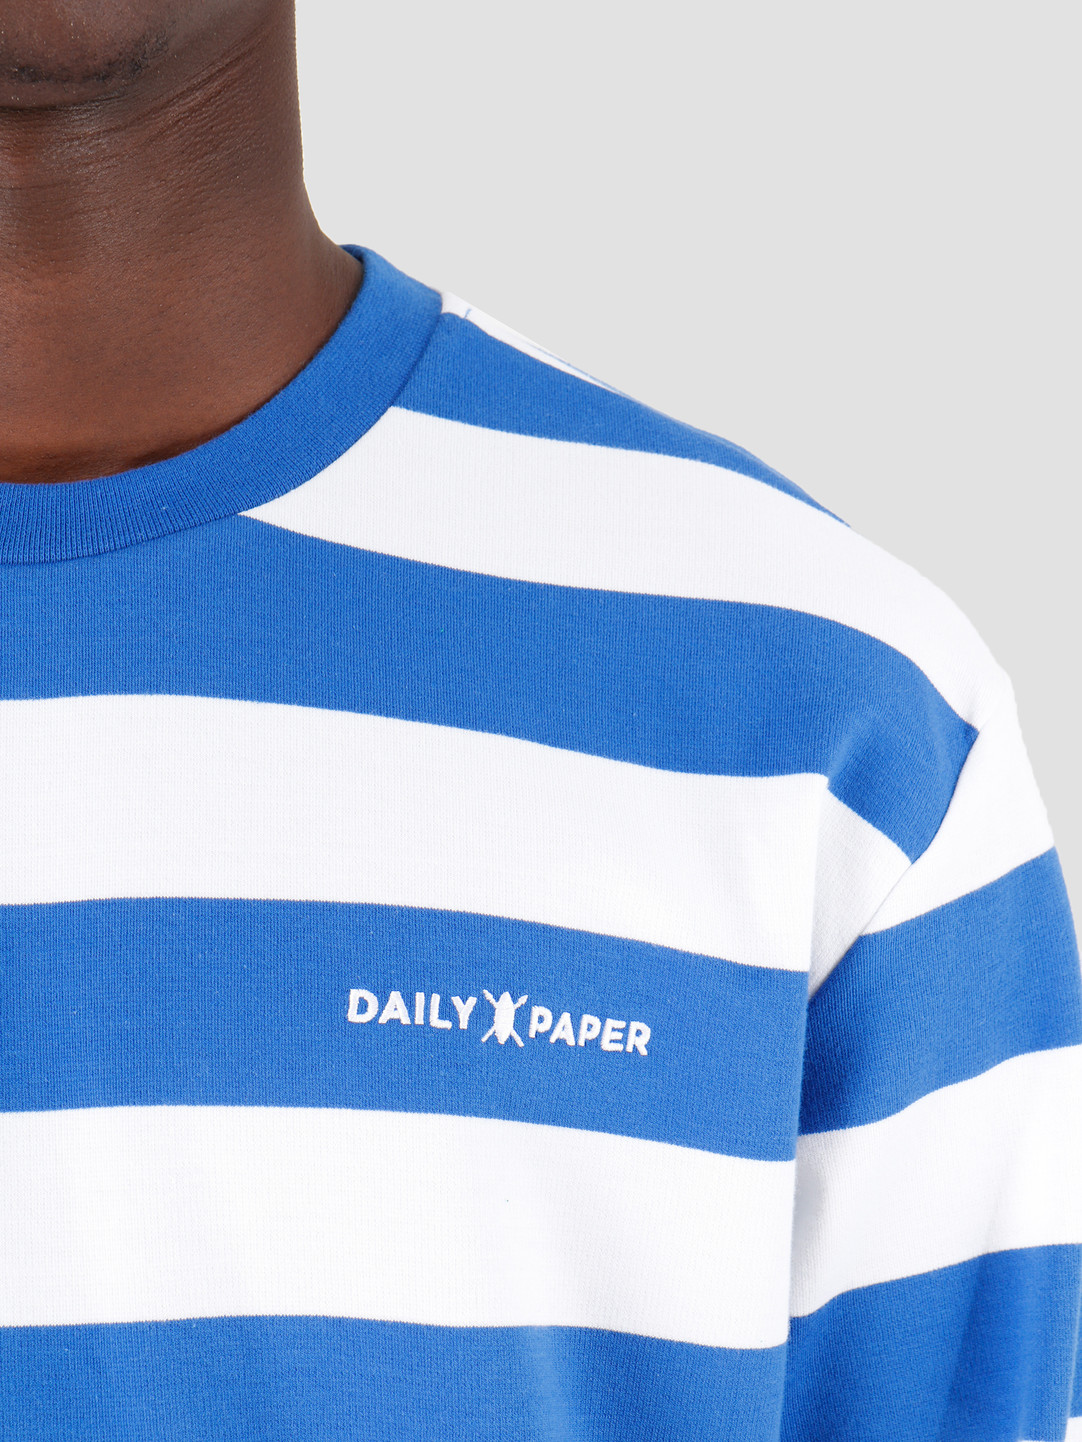 Daily Paper Daily Paper Astripe Longsleeve Turkish Sea White 19E1LS01-02